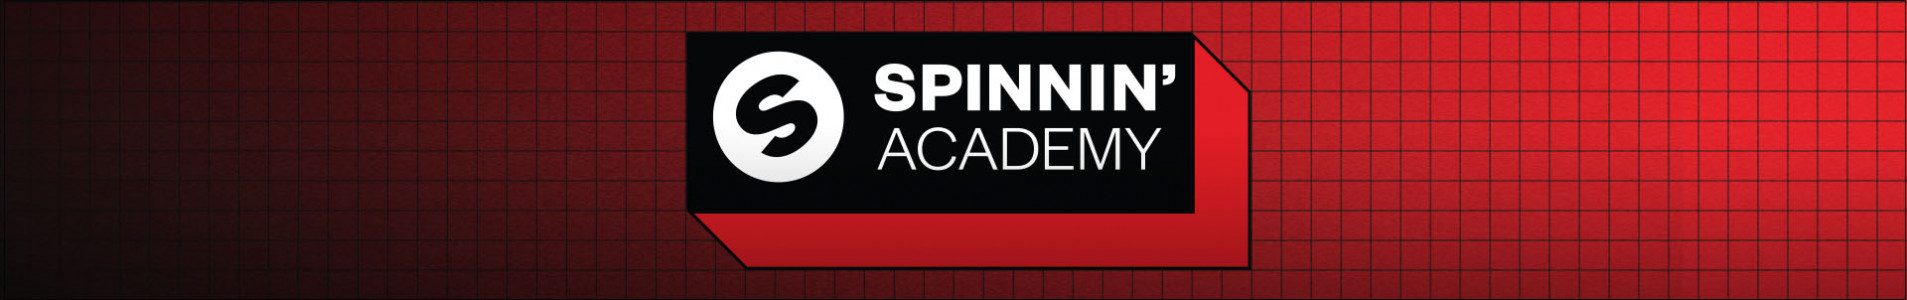 Spinnin' Academy announces its Dancefair program